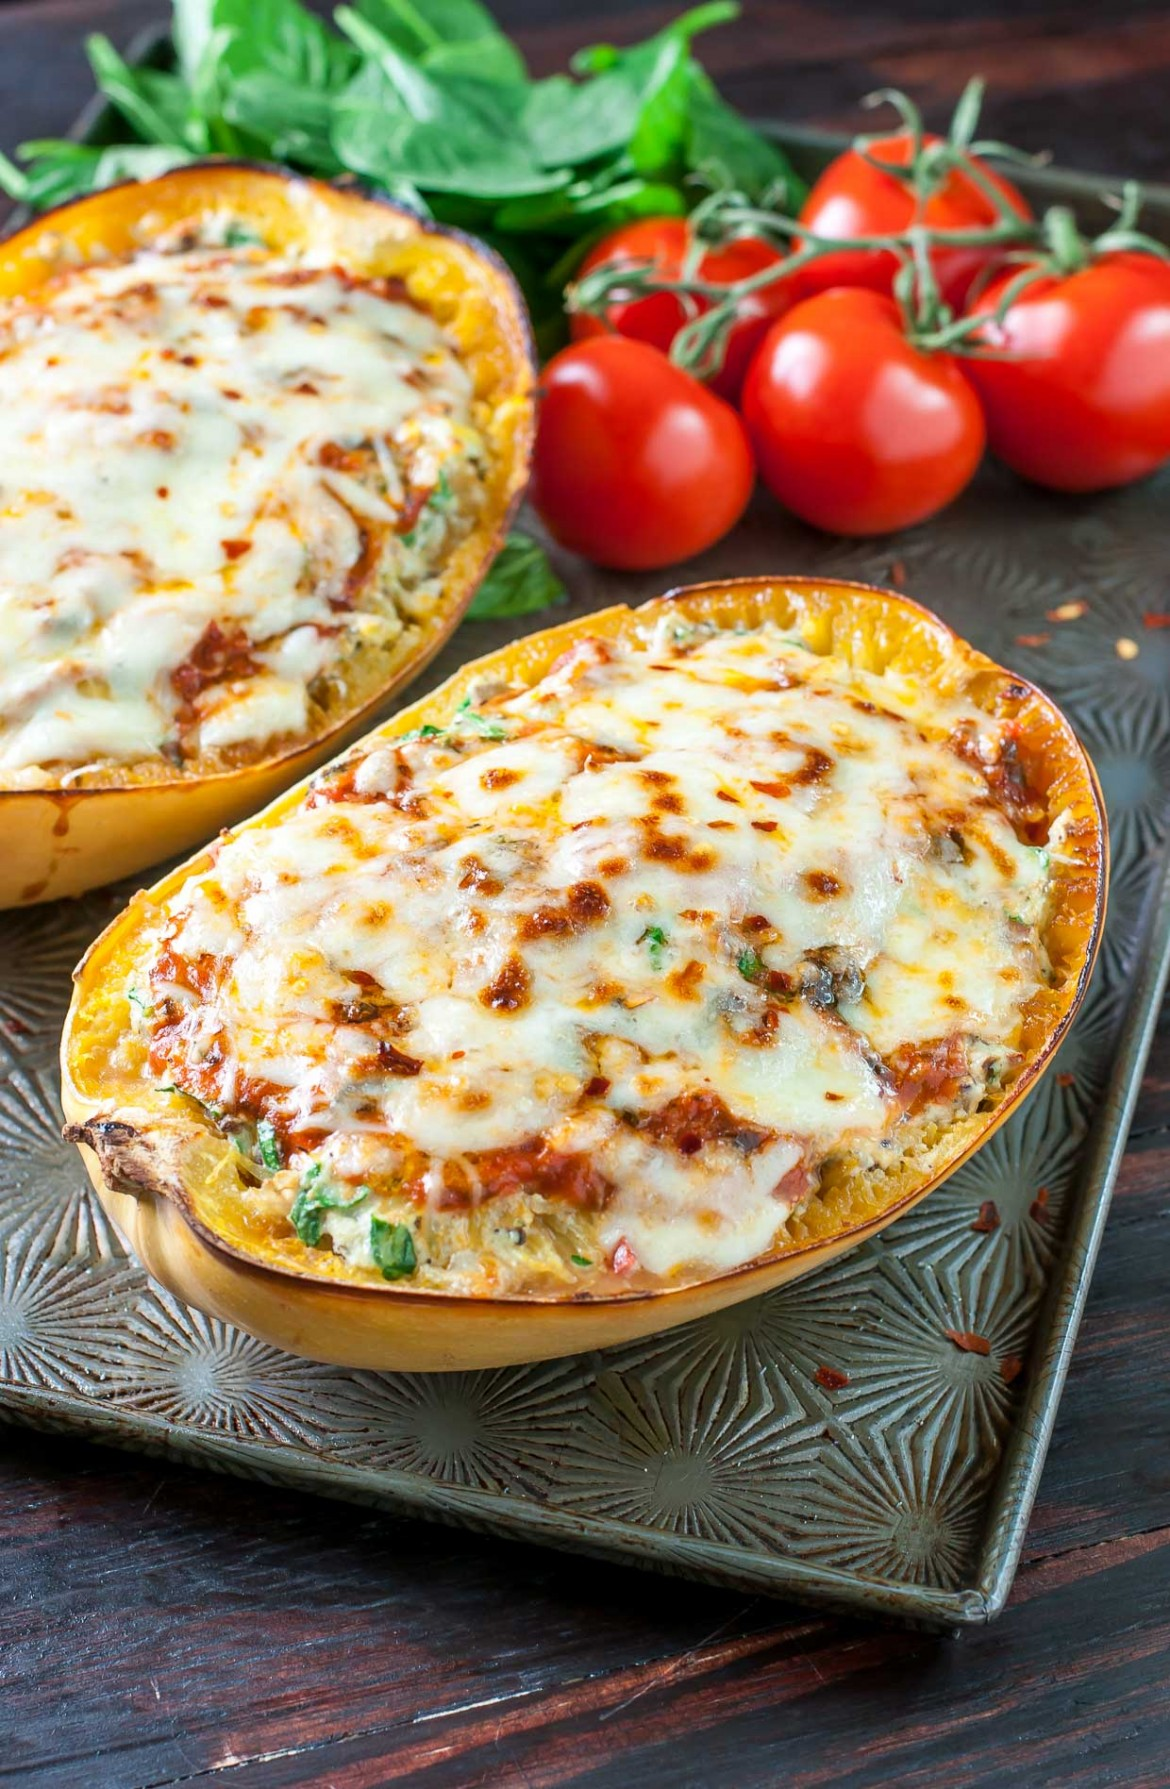 feb - recipe - vegetarian lasagna